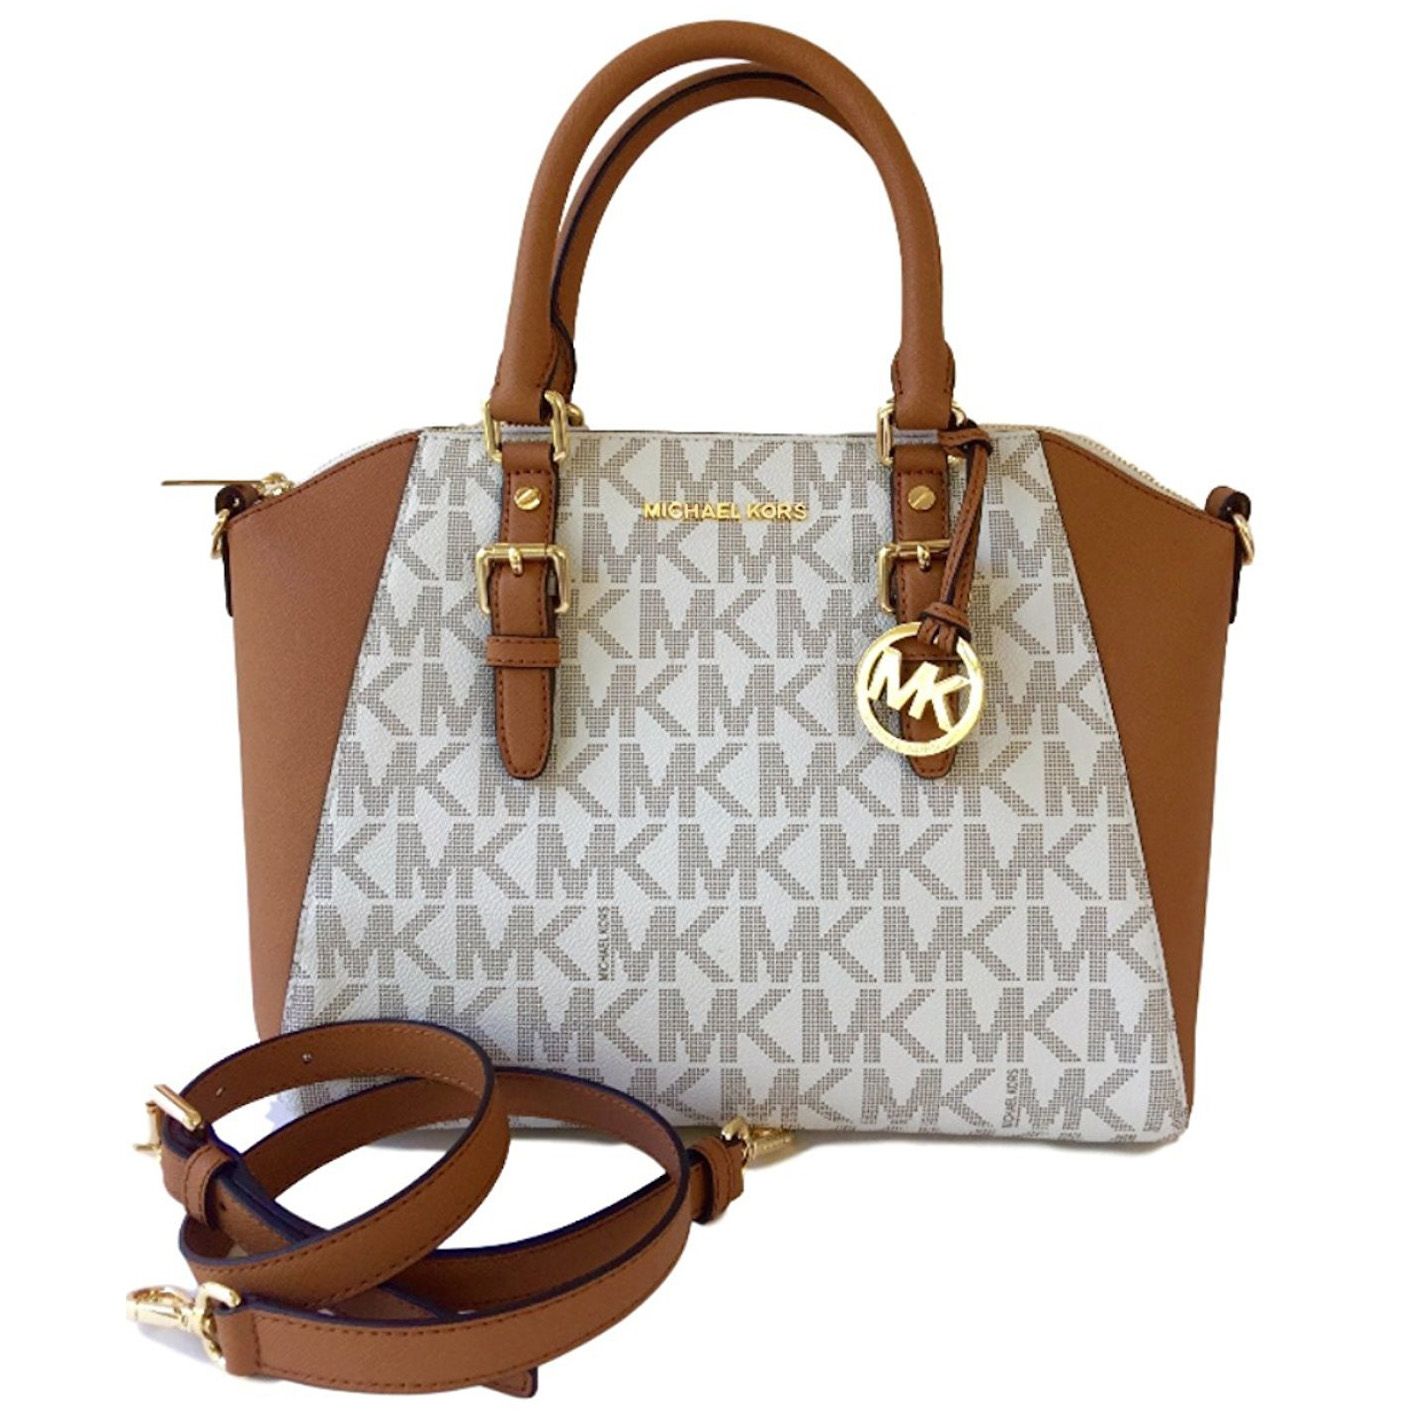 Michael Kors Ciara Medium Messenger Satchel Crossbody Bag Vanilla White / Acorn Brown # 35S7GC6M8B